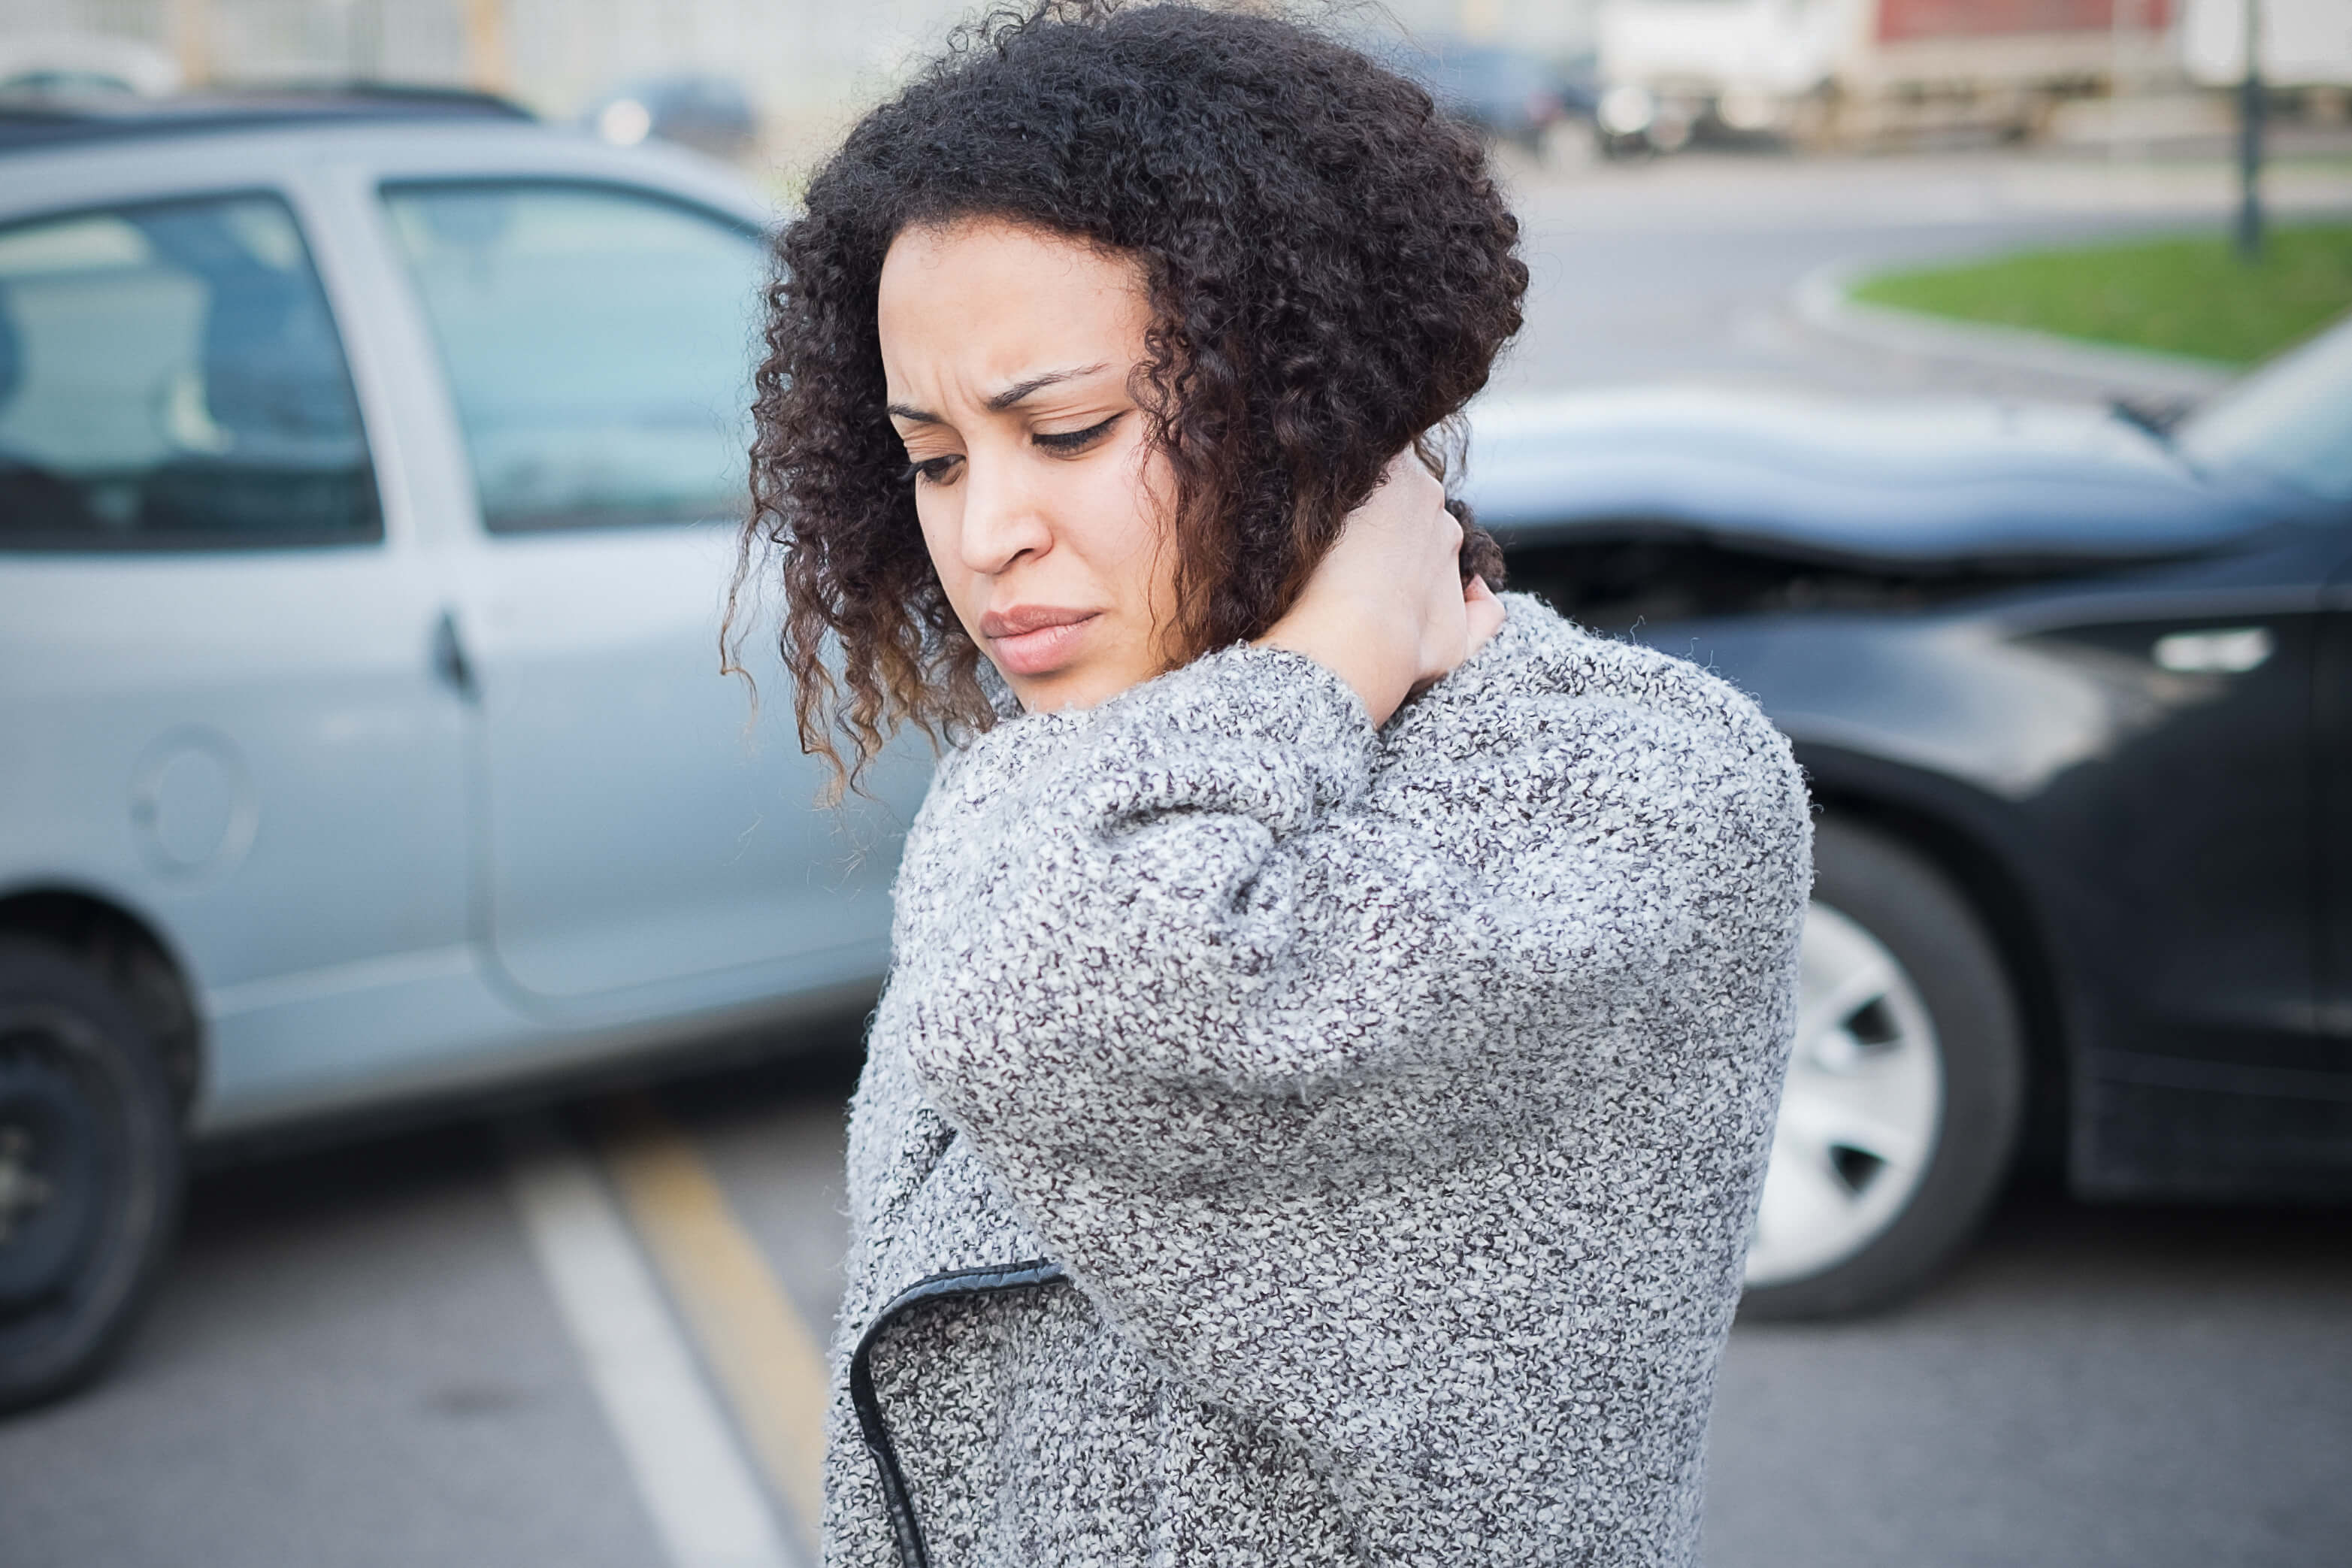 seek help from chiropractors in midland michigan after auto accidents